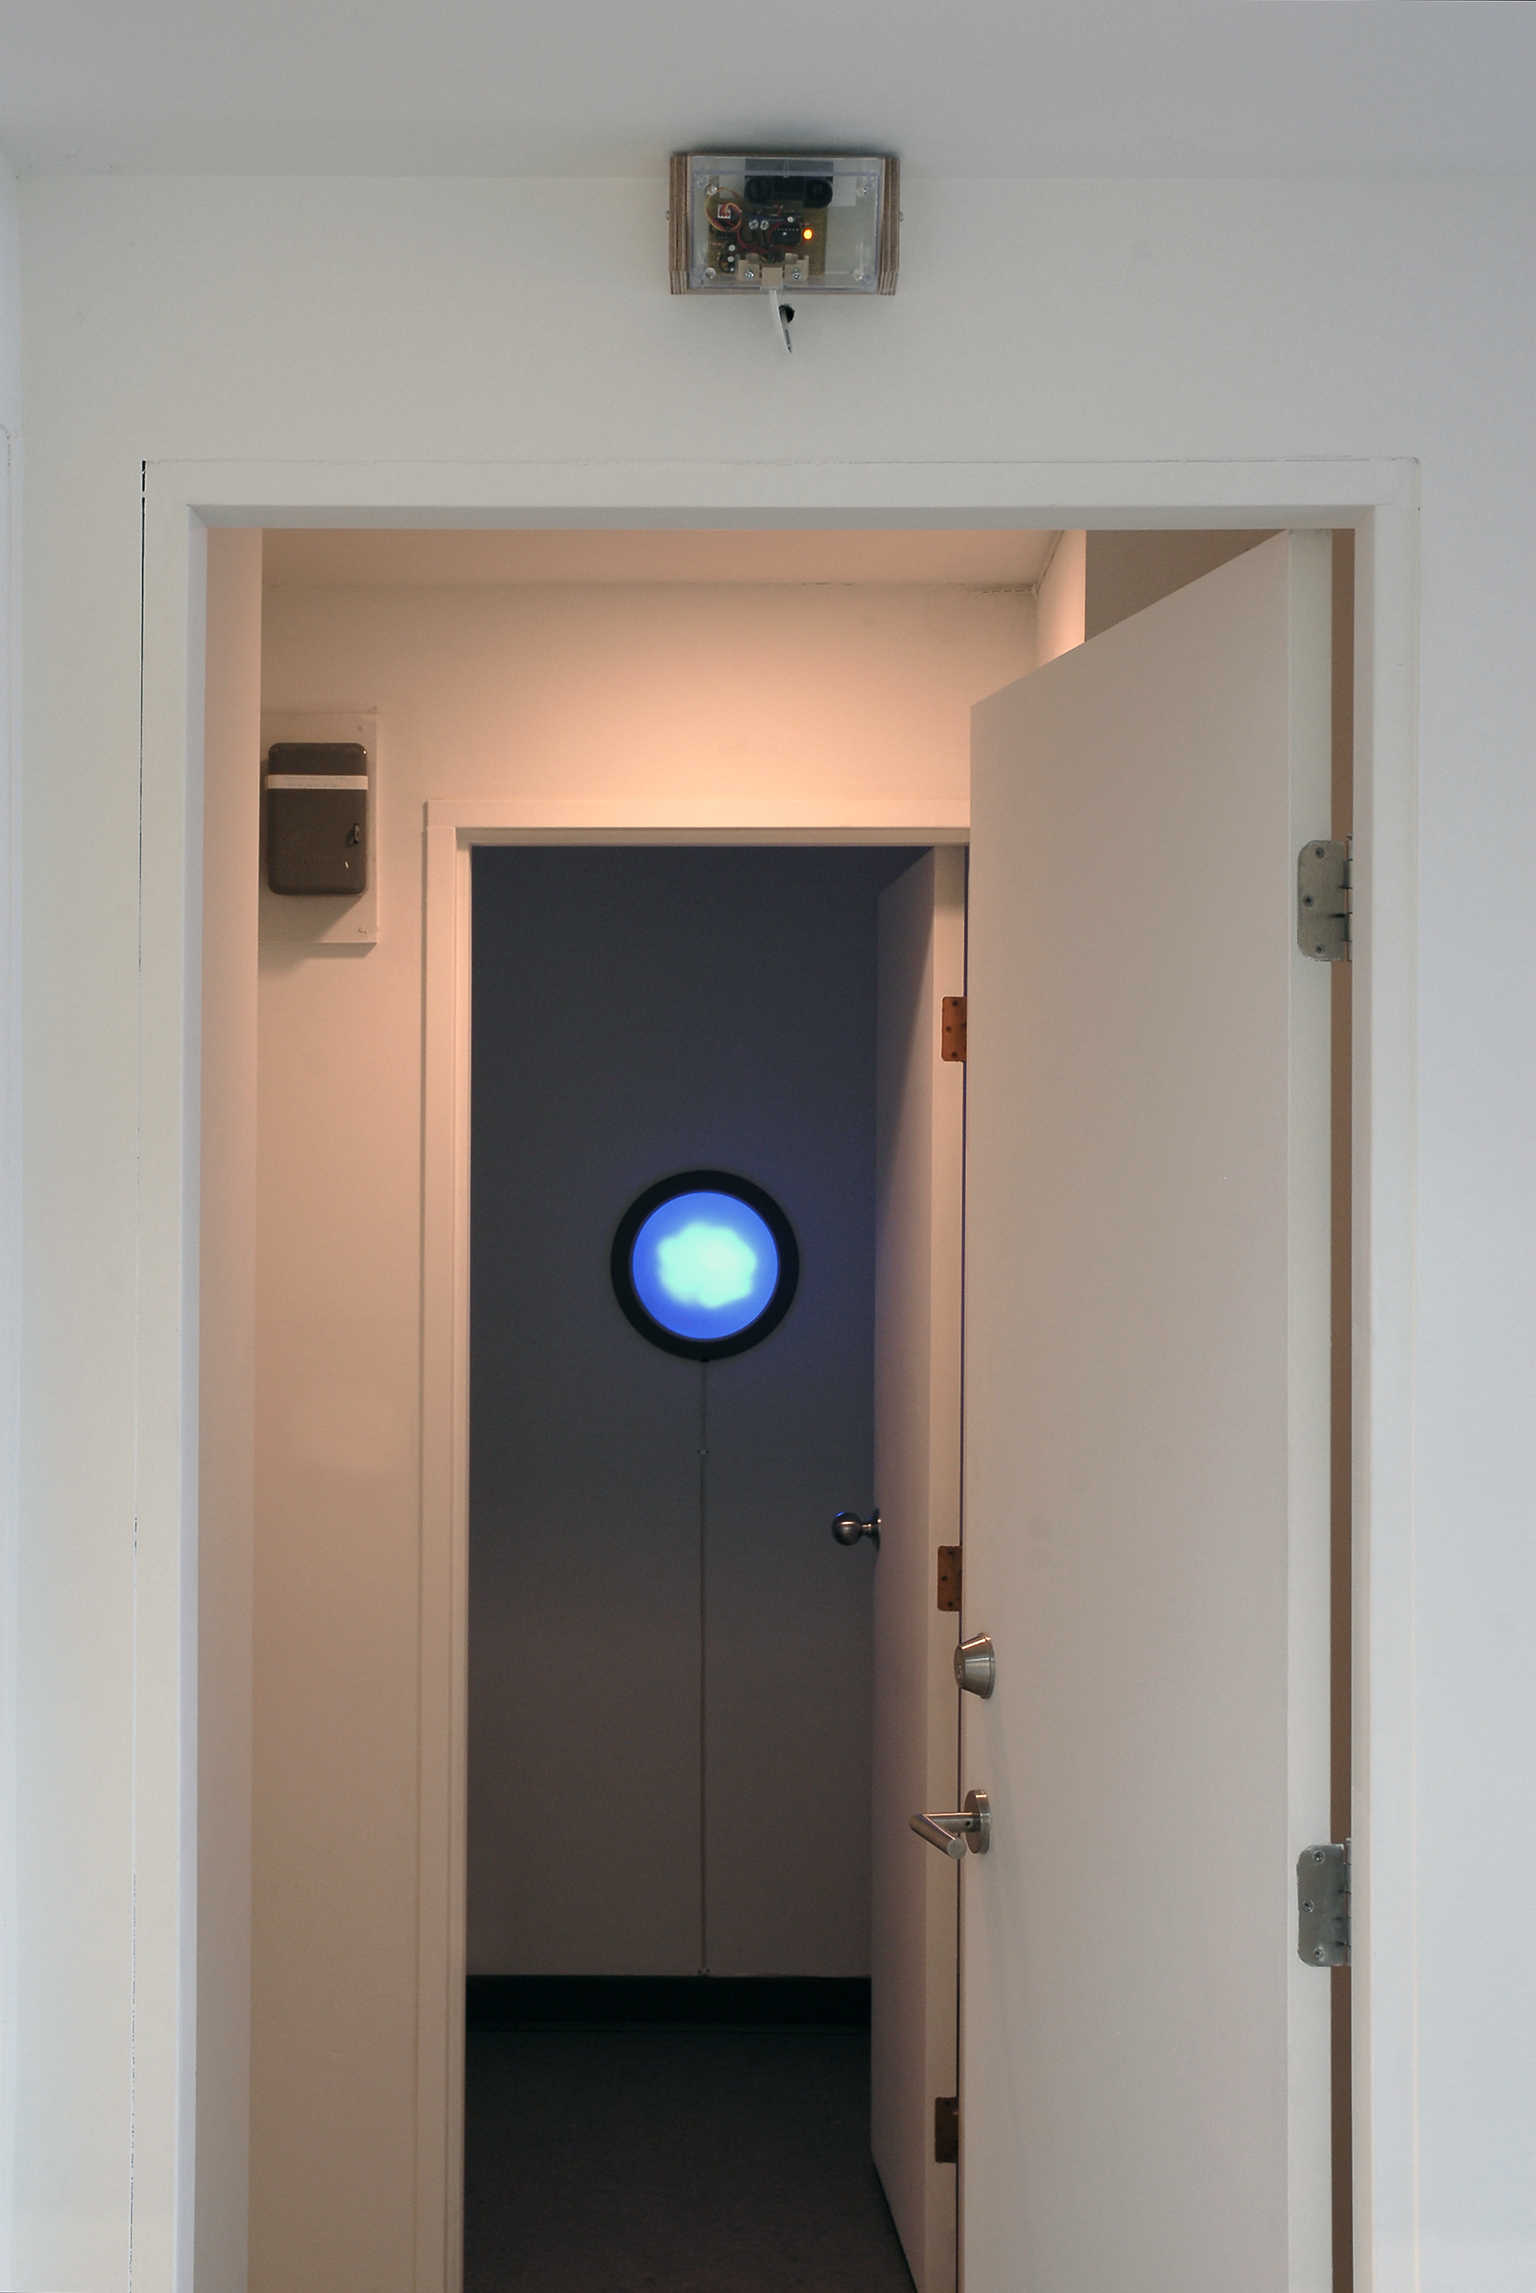 ​Germaine Koh, Volume (Traffic), 2008, modified household fixture with LEDs responding to traffic conditions, 13 × 13 × 5 in. (33 x 33 x 13 cm) by